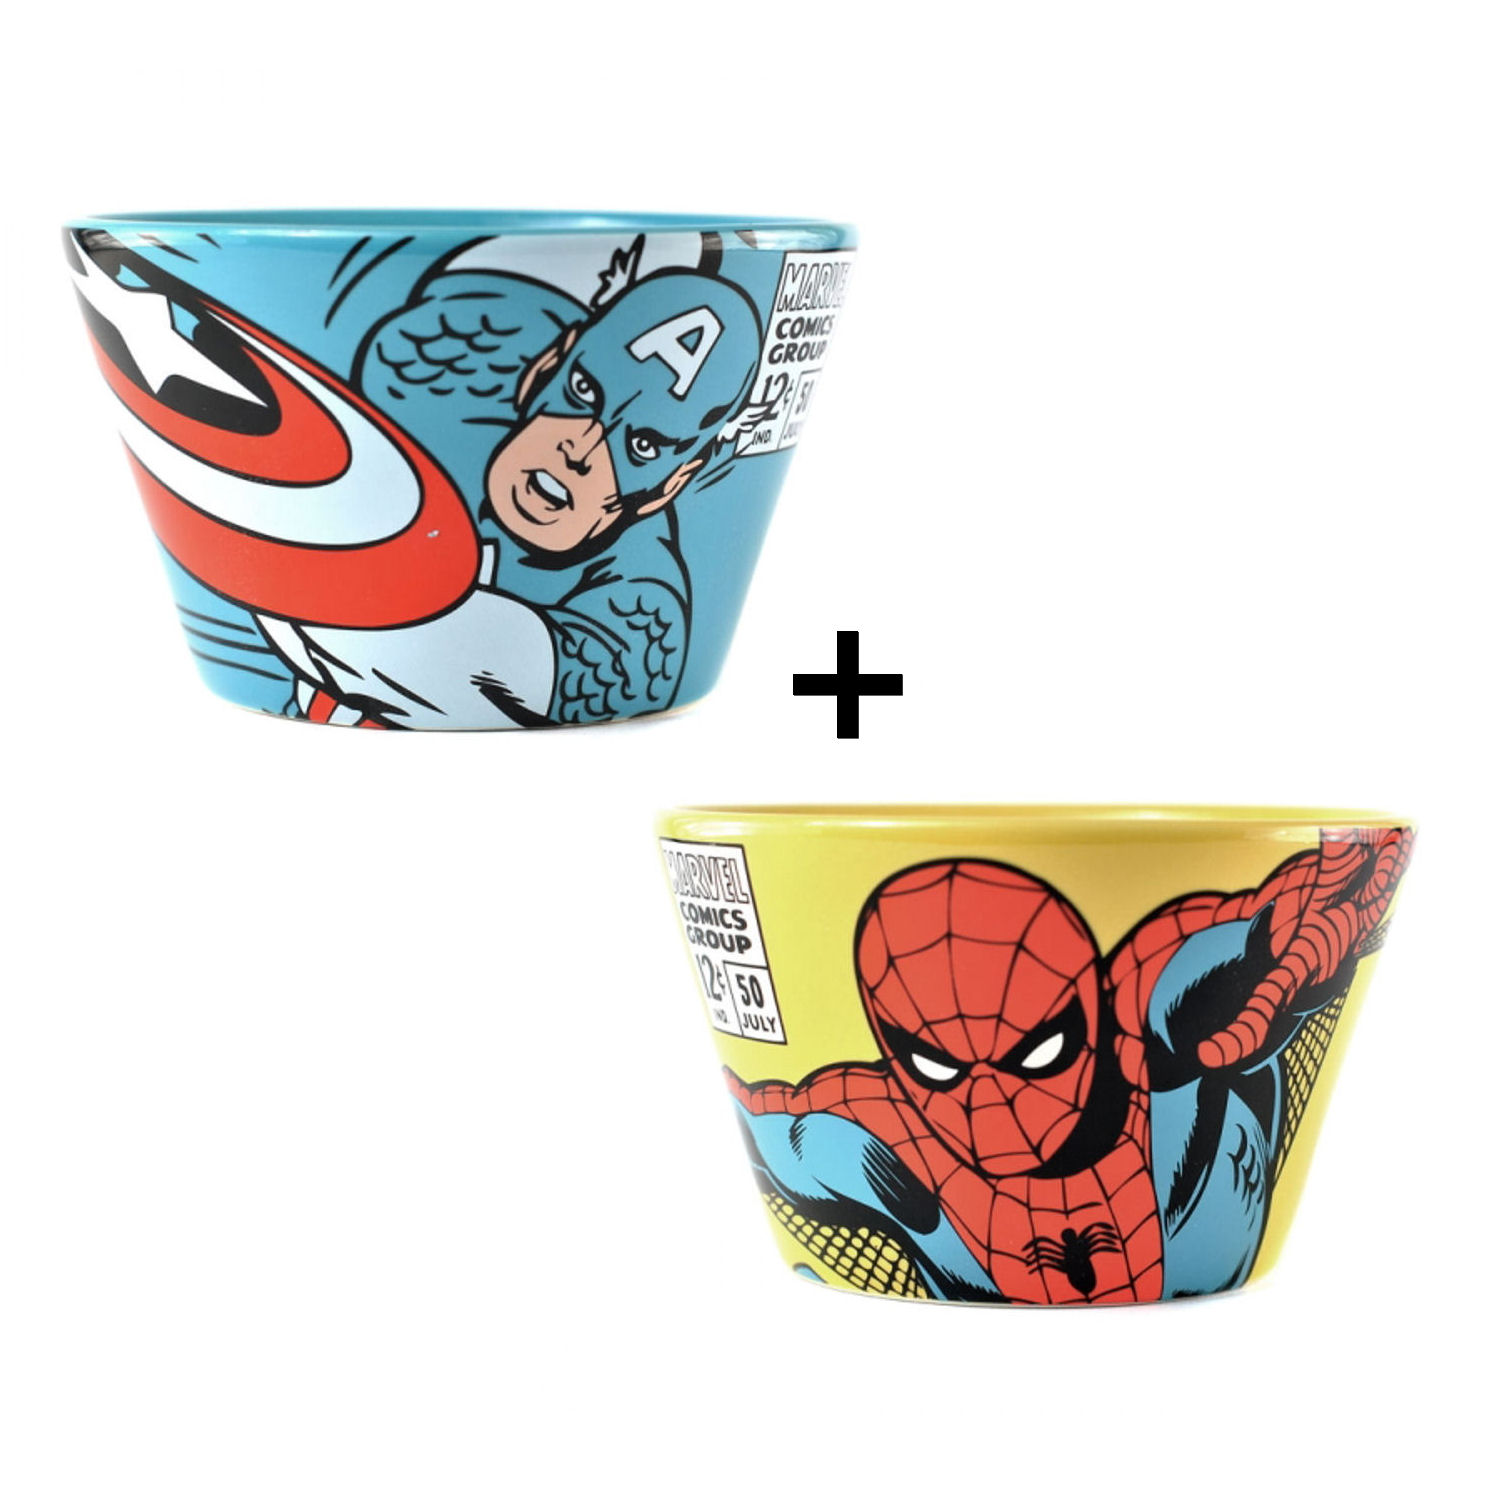 Set of 2 Ceramic Bowls - Captain America & Spider-Man